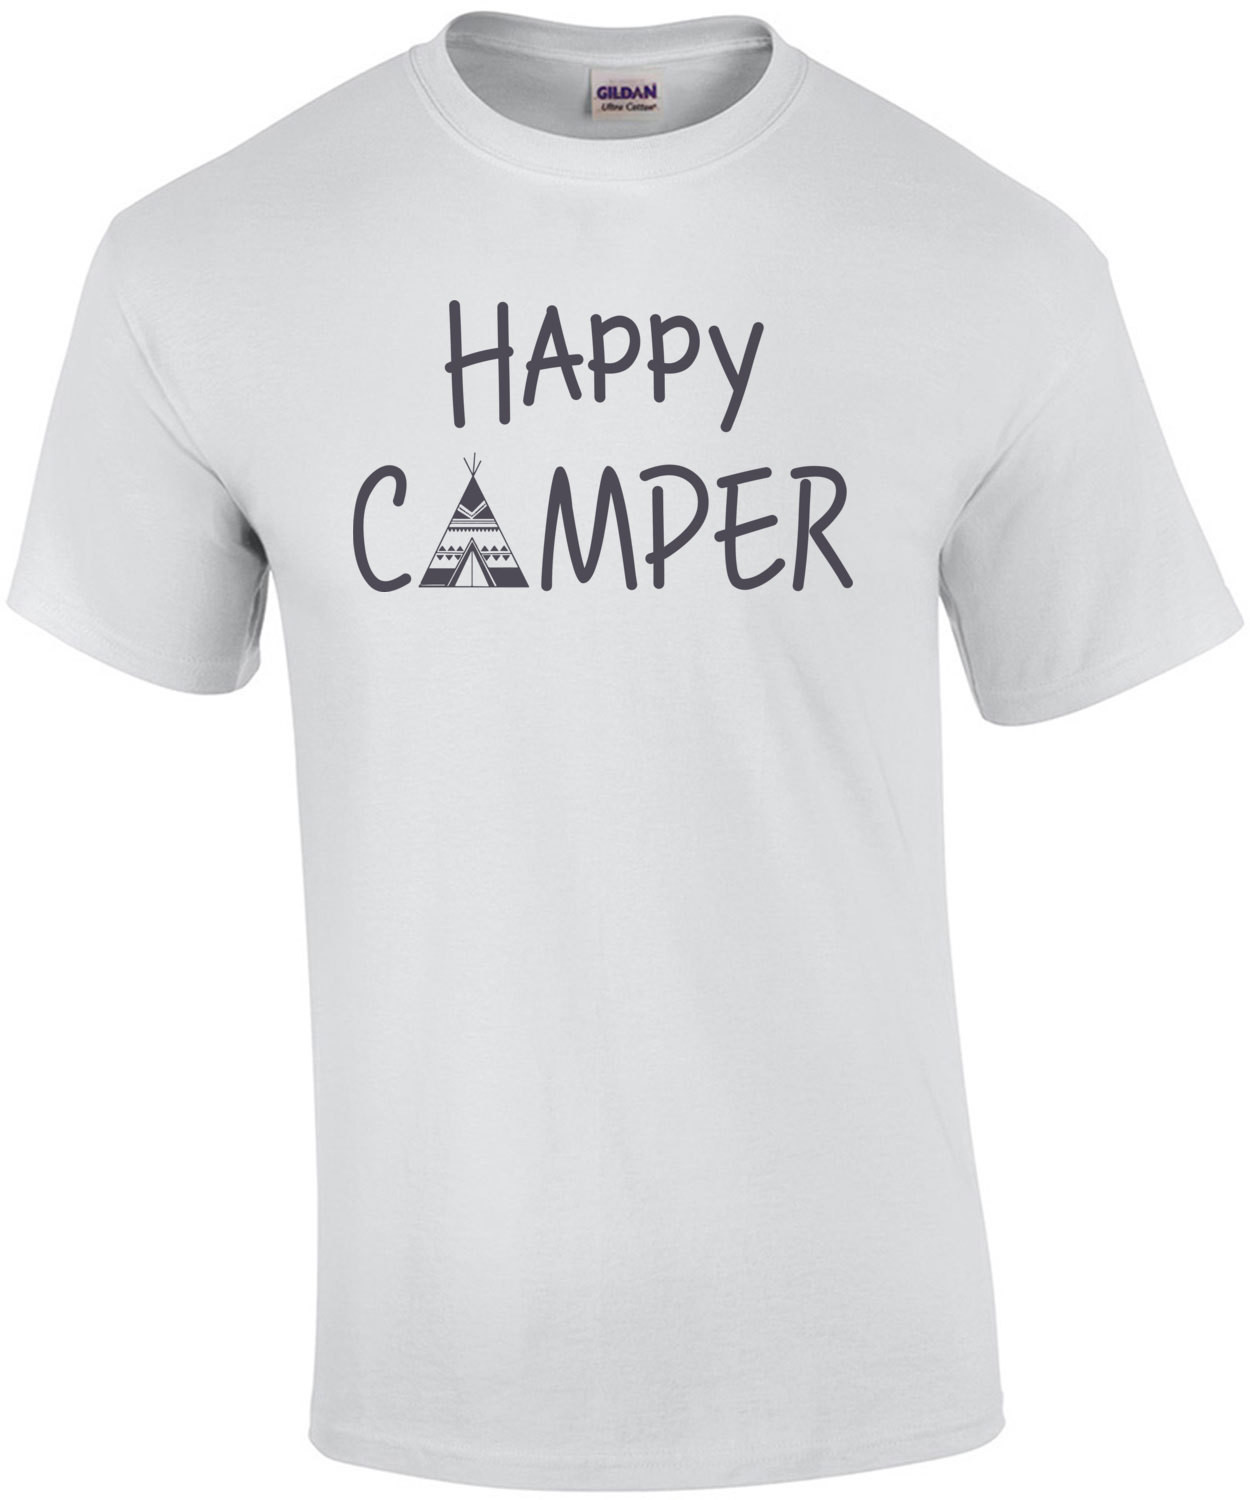 Happy Camper teepee - Happy Camper T-Shirt